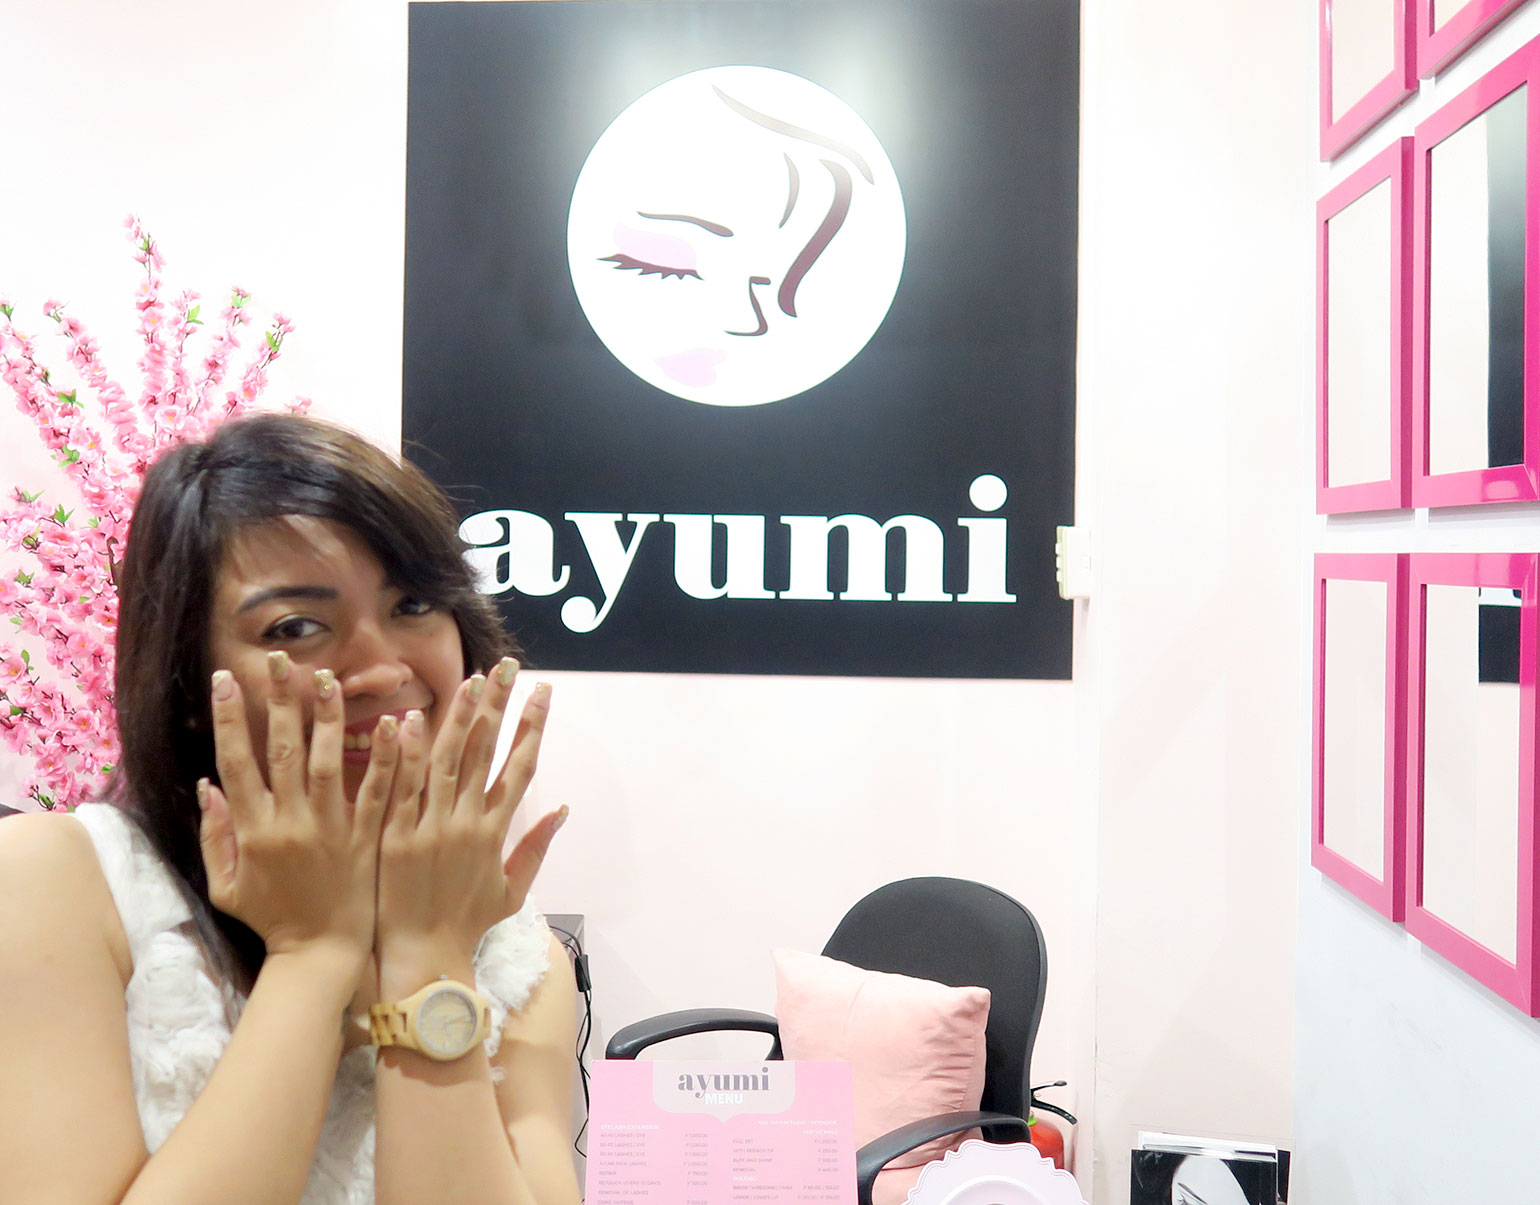 14 Acrylic Nails Review - Nail Art - Ayumi Las Piñas - Gen-zel.com(c)